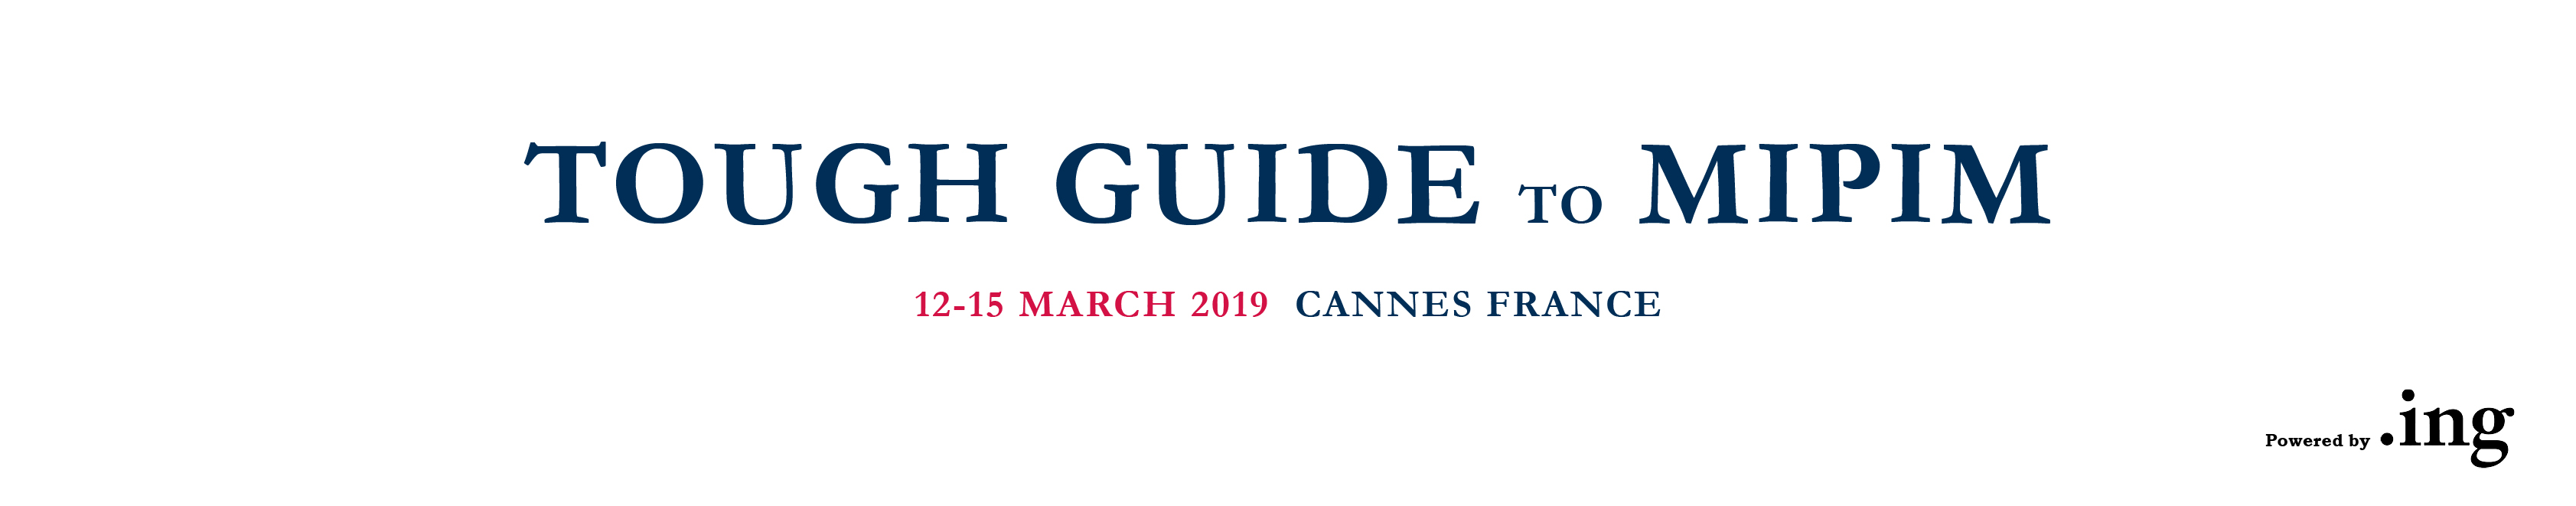 MIPIM TOUGH GUIDE 2019